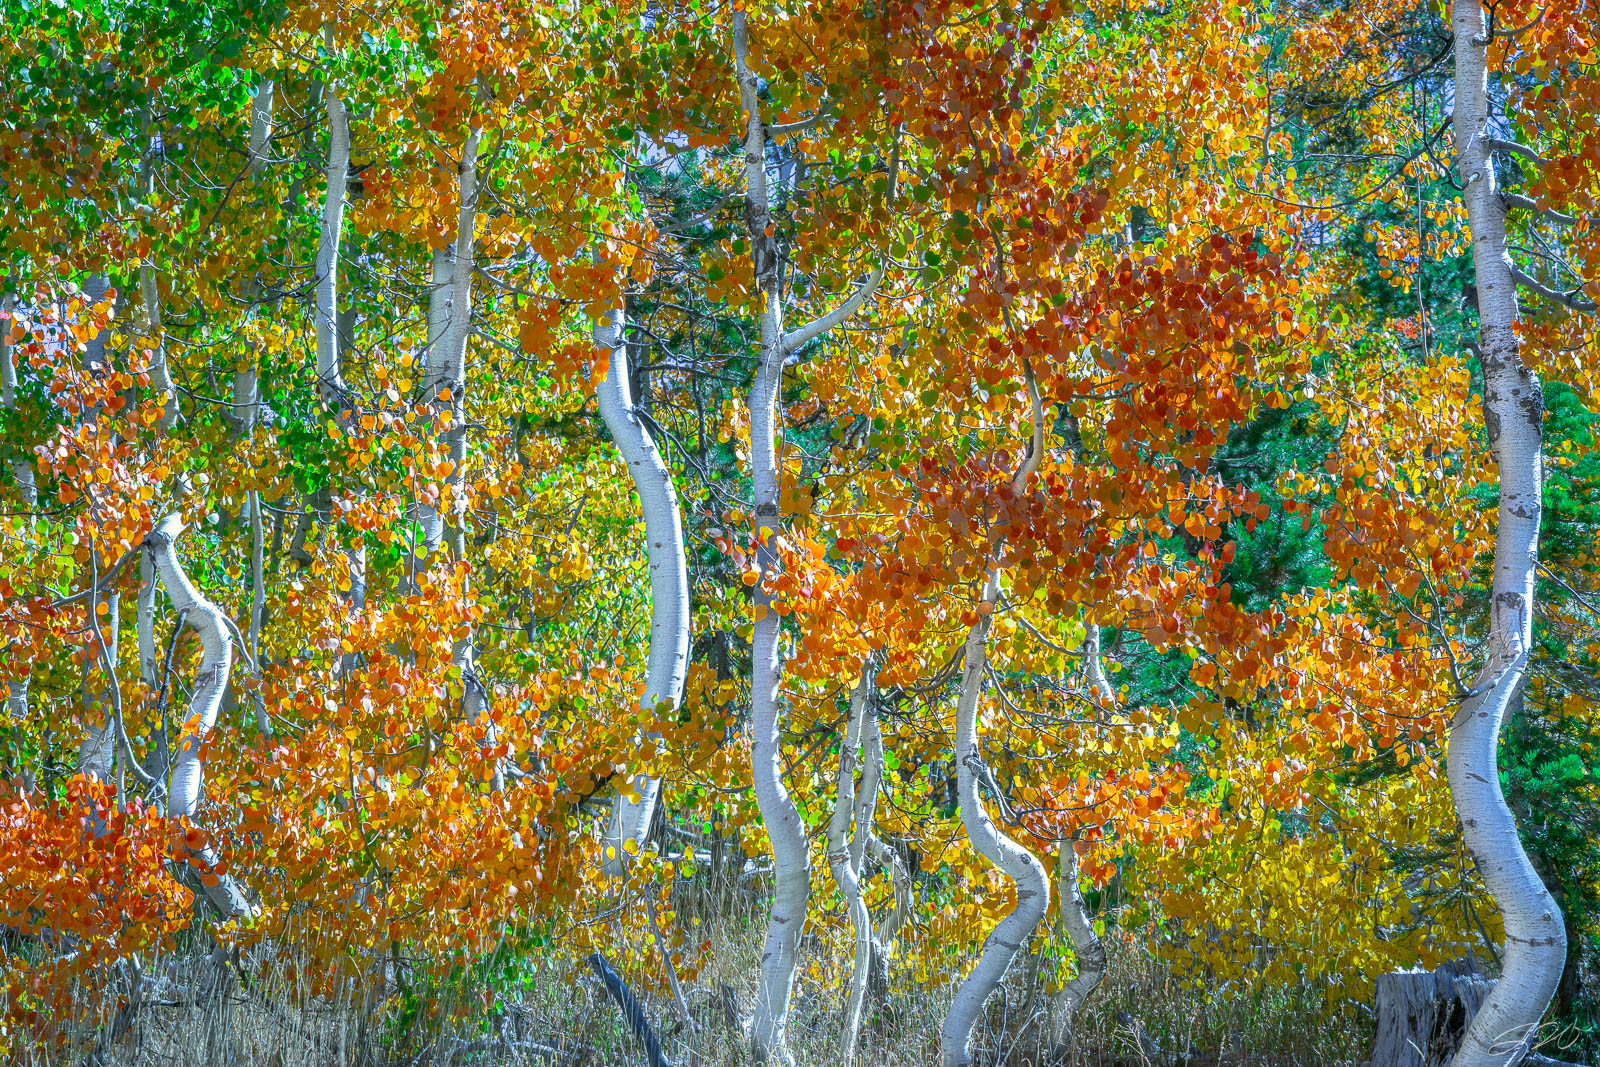 Abstract, Aspen Tree, California, Curvy Trunk, Fall Color, Lake Tahoe, Landscape, Leaves, Quaking, Tahoe Rim Trail, photo